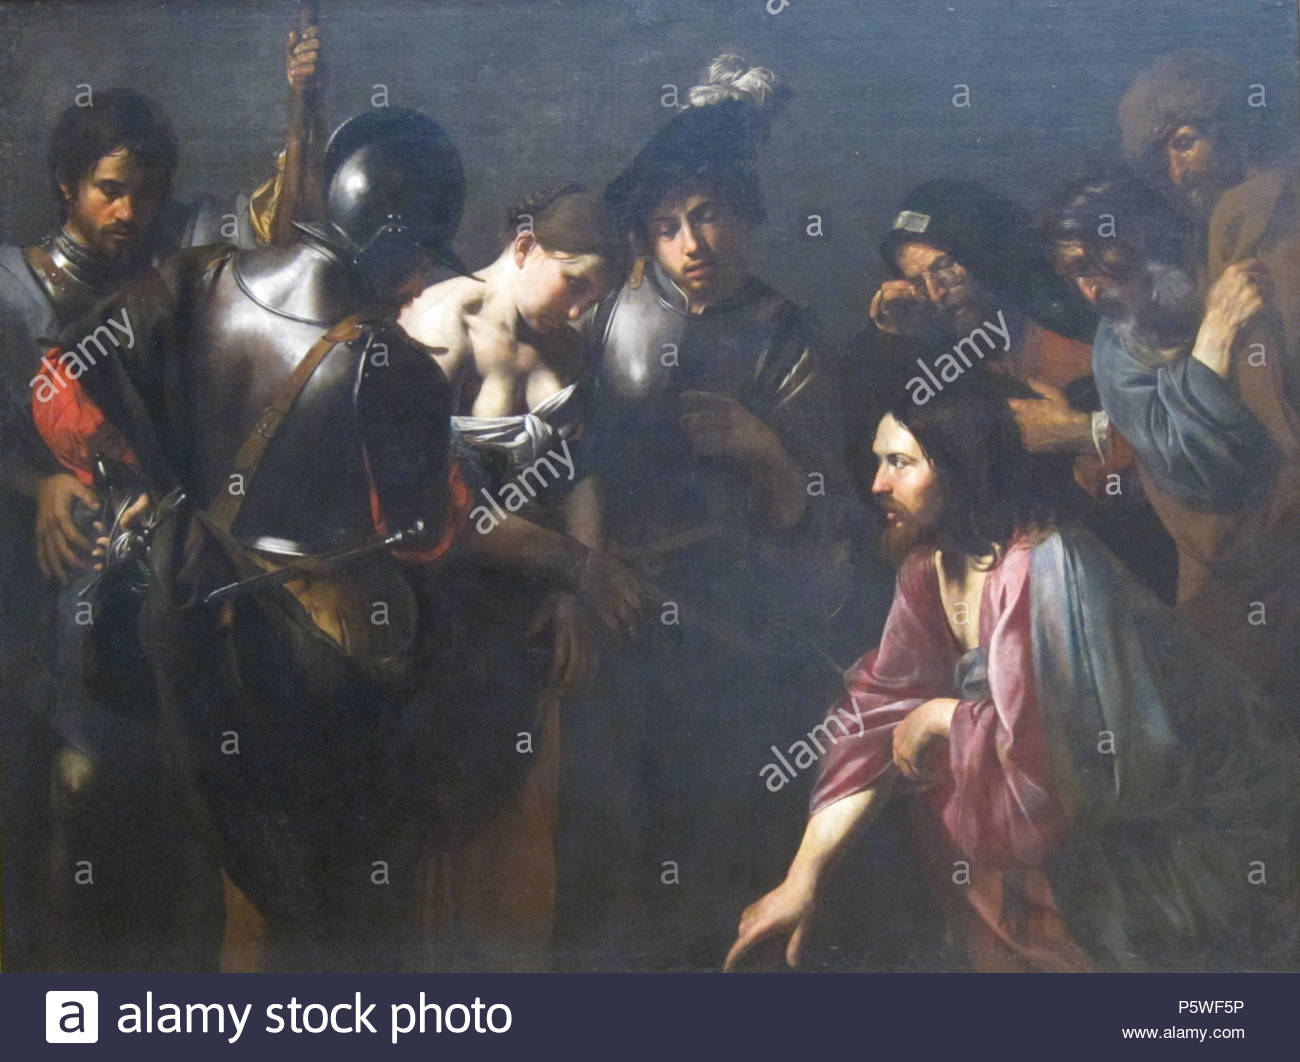 N/A. Christ and the Adulteress . 1620s.    Valentin de Boulogne (1591–1632)  Alternative names Jean Valentin Le Valentin  Description French painter  Date of birth/death 3 January 1591 (baptised) 20 August 1632 (buried)  Location of birth/death Coulommiers Rome  Work location Rome (1612-1632)  Authority control  : Q1337275 VIAF:120746211 ISNI:0000 0001 1580 793X ULAN:500021073 LCCN:no90018840 WGA:VALENTIN DE BOULOGNE WorldCat 342 Christ and the Adulteress by Valentin de Boulogne, Getty Center - Stock Image